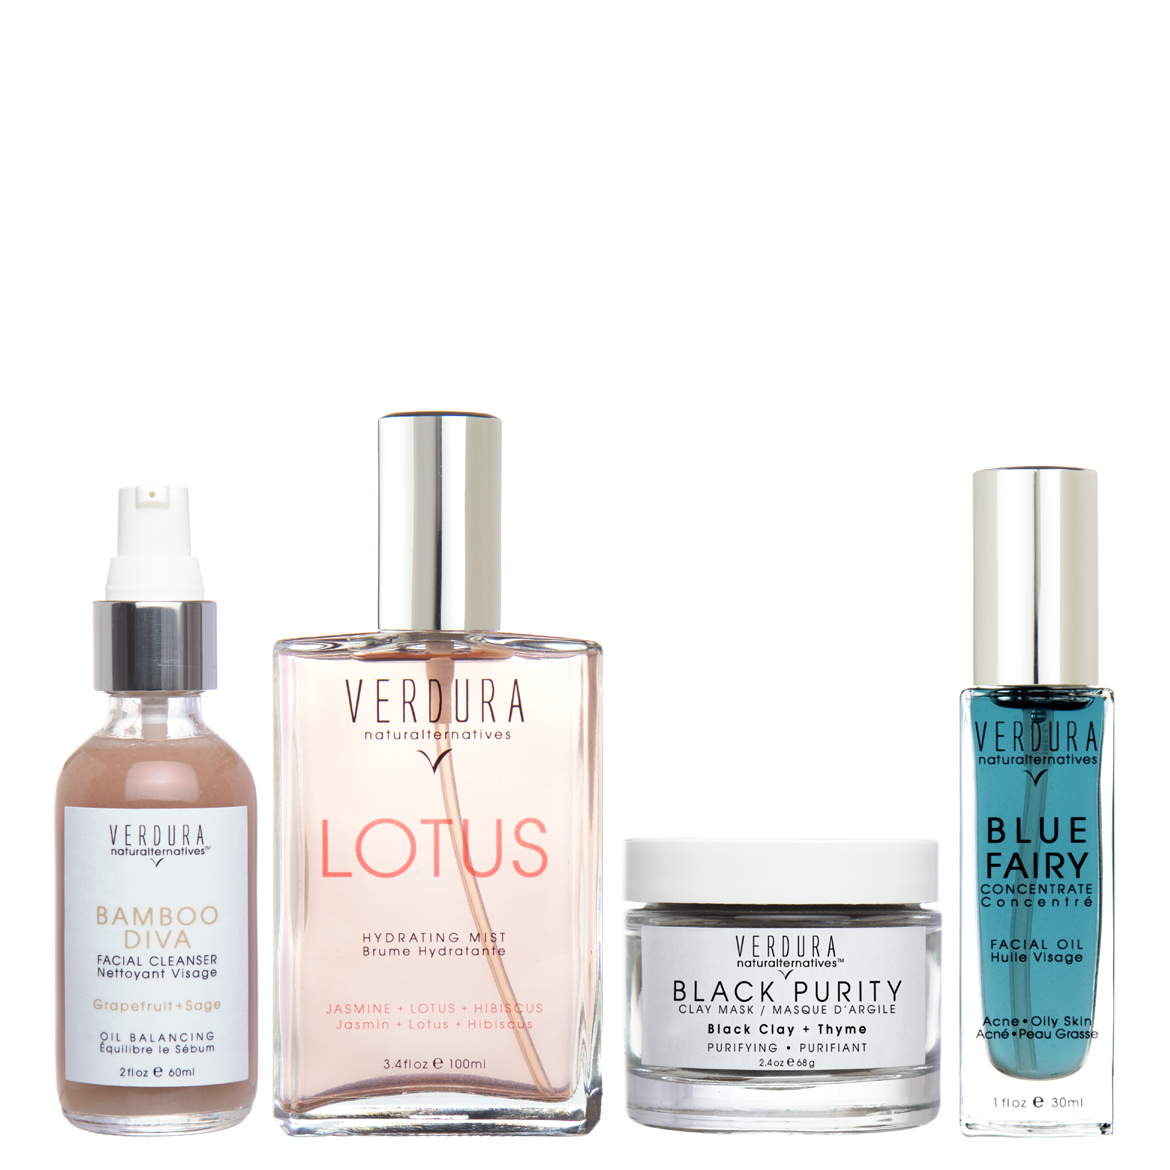 ACNE / OILY SKIN REGIMEN | 100%natural | VERDURA naturalternatives | Our